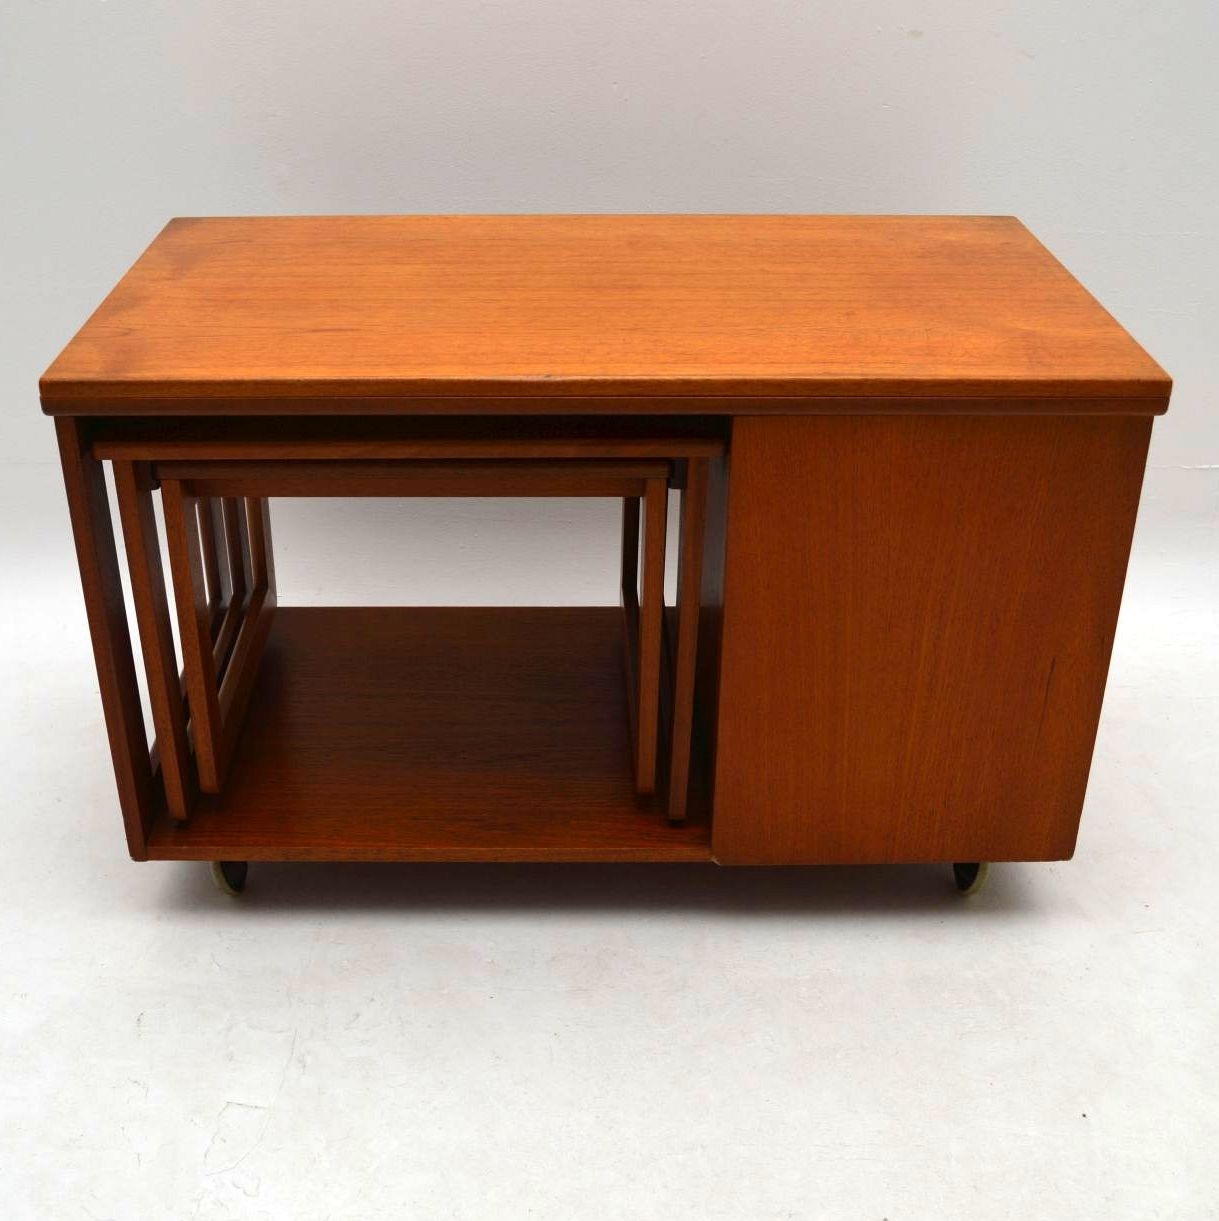 Second Hand Teak Coffee Table: 1960's Teak Tristor Coffee Table By McIntosh